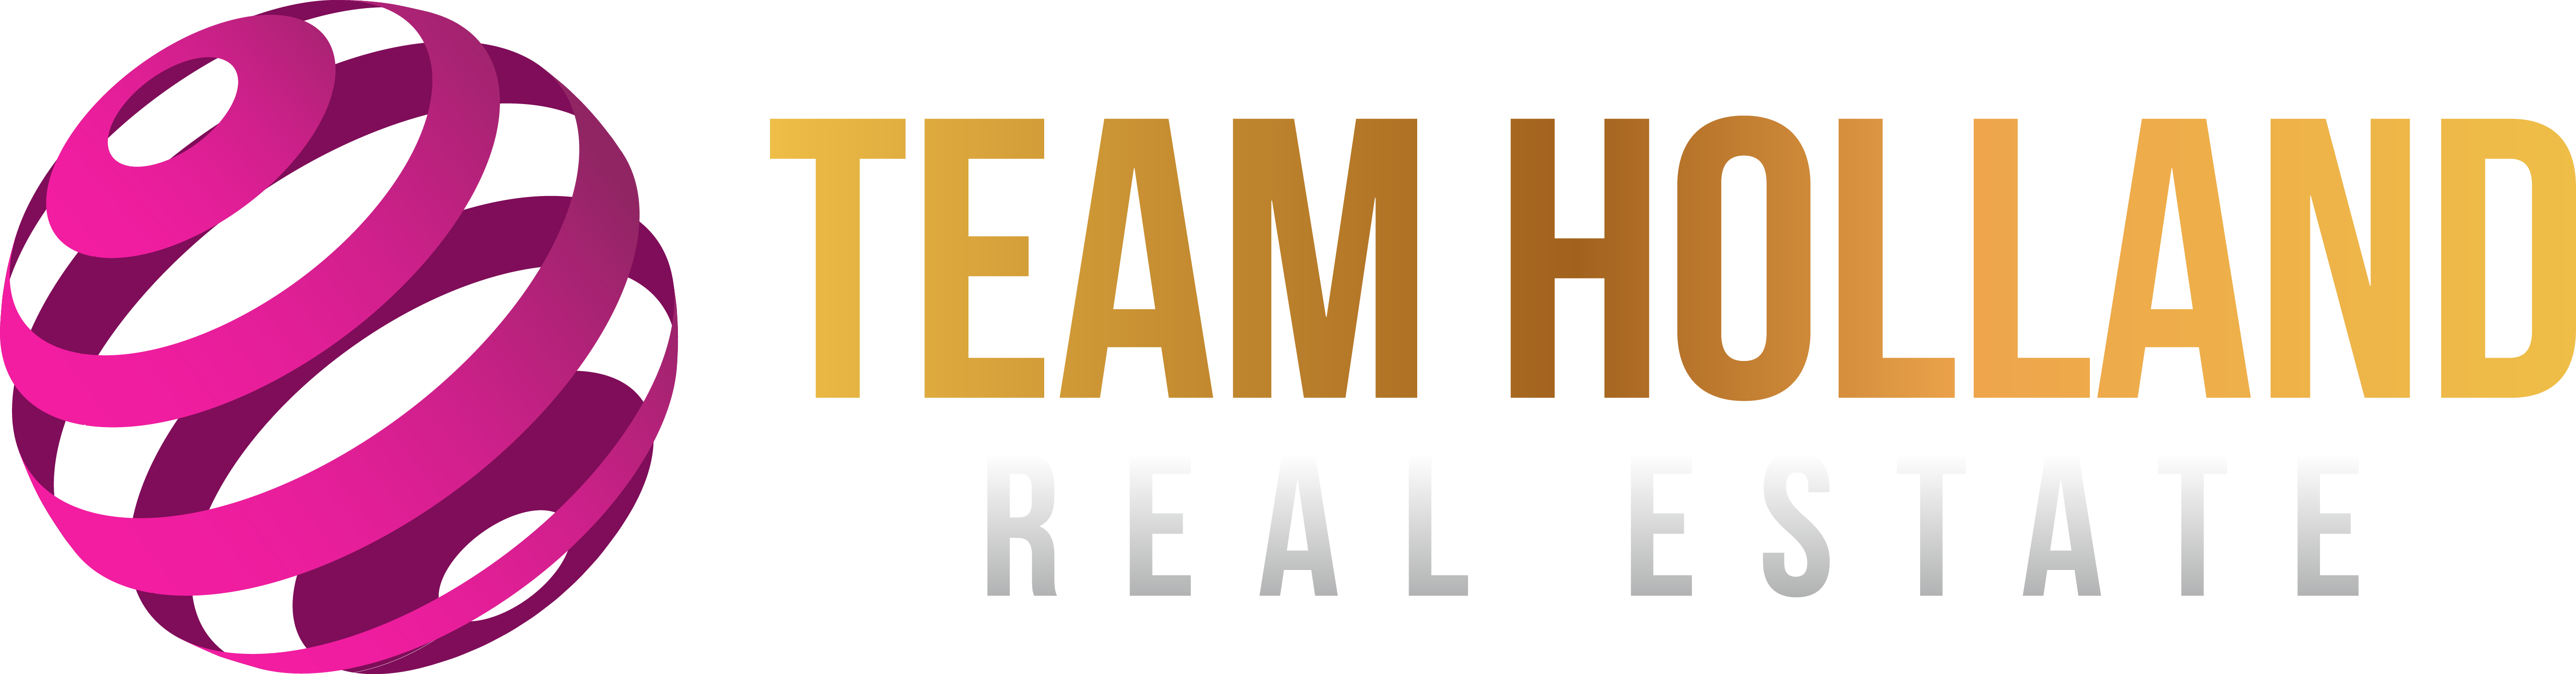 Team Holland Real Estate